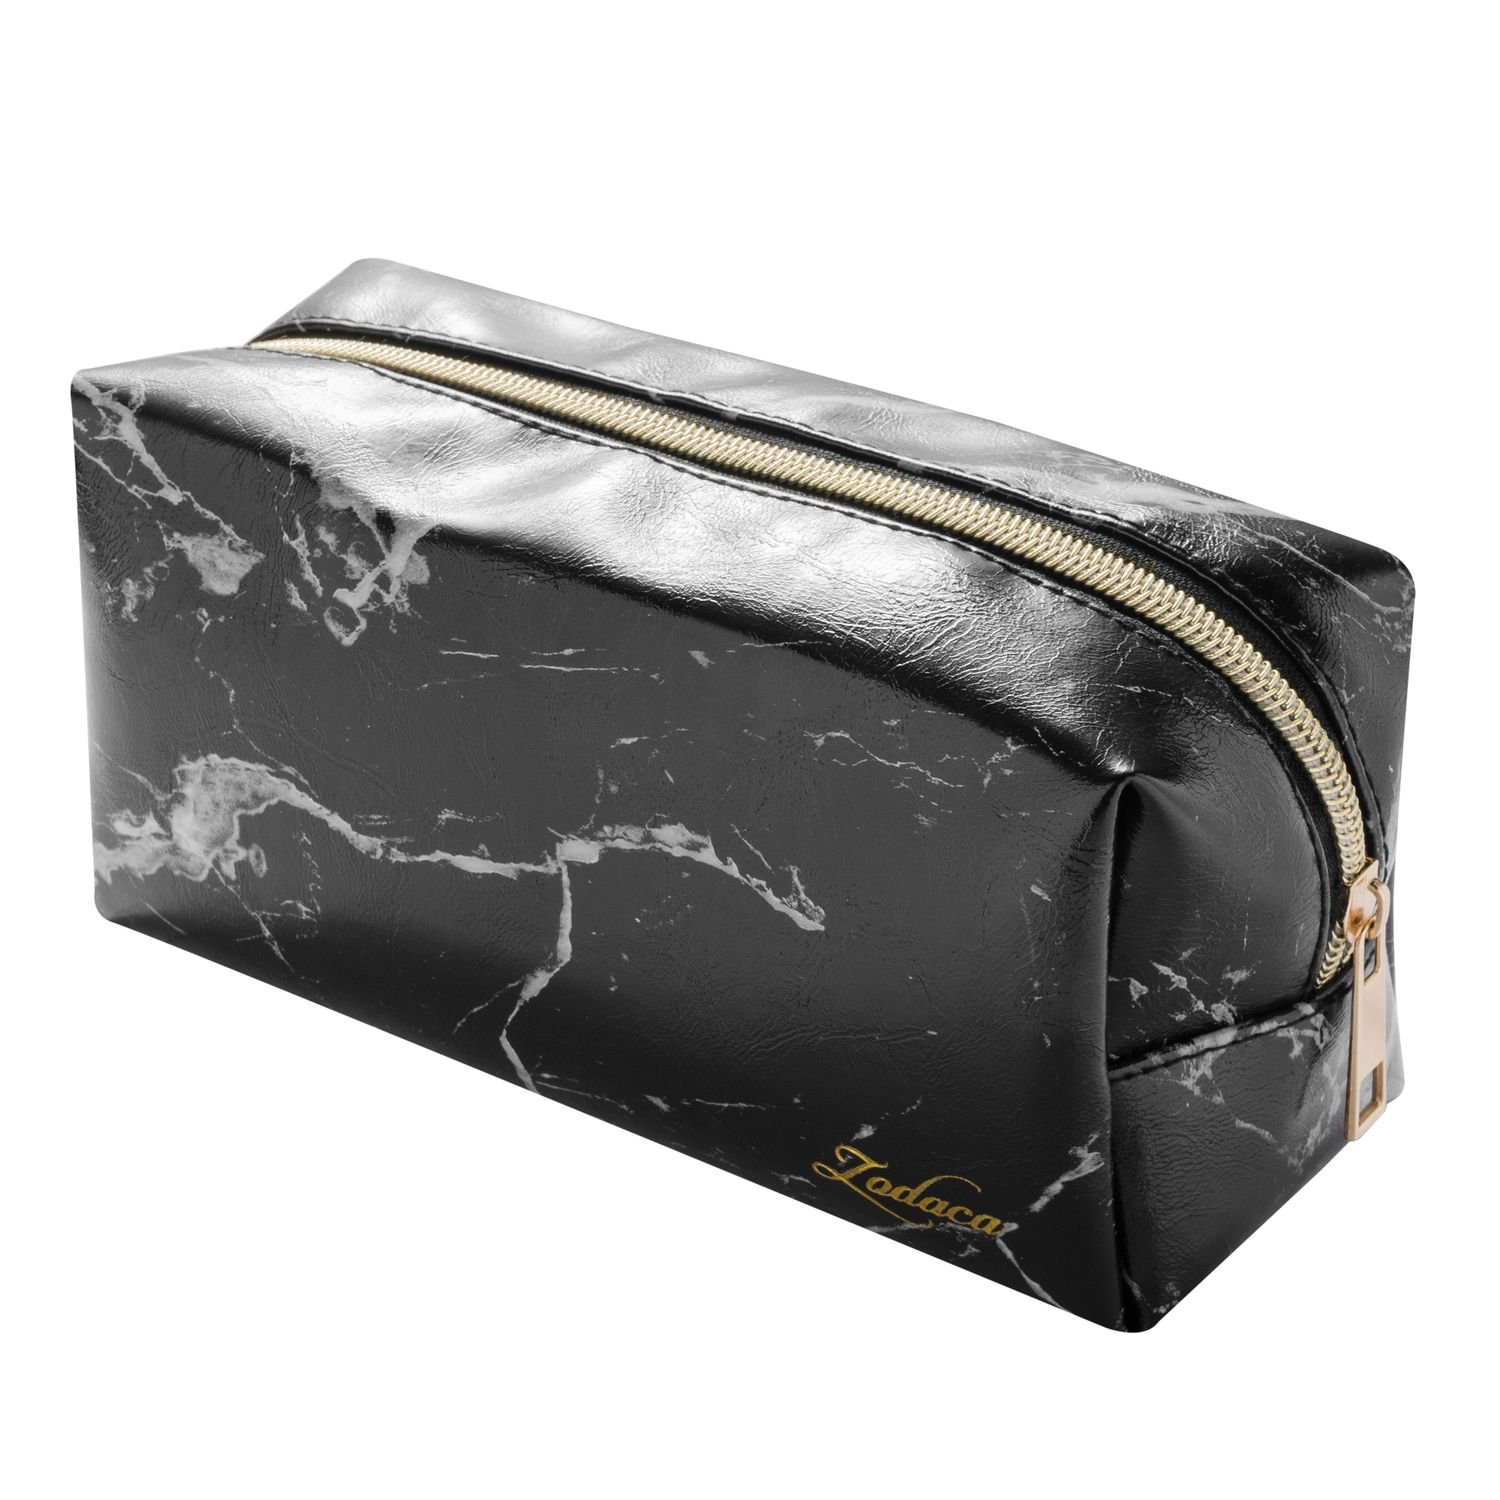 "Marble Cosmetic Bag, Zodaca Marble Pattern Portable Gold Zipper Makeup Brushes Bag Travel Cosmetic Pouch Toiletry Organizer Pencil Case for Ladies/Women, Black (7.7"" x 3.5"" x 3.1"")"